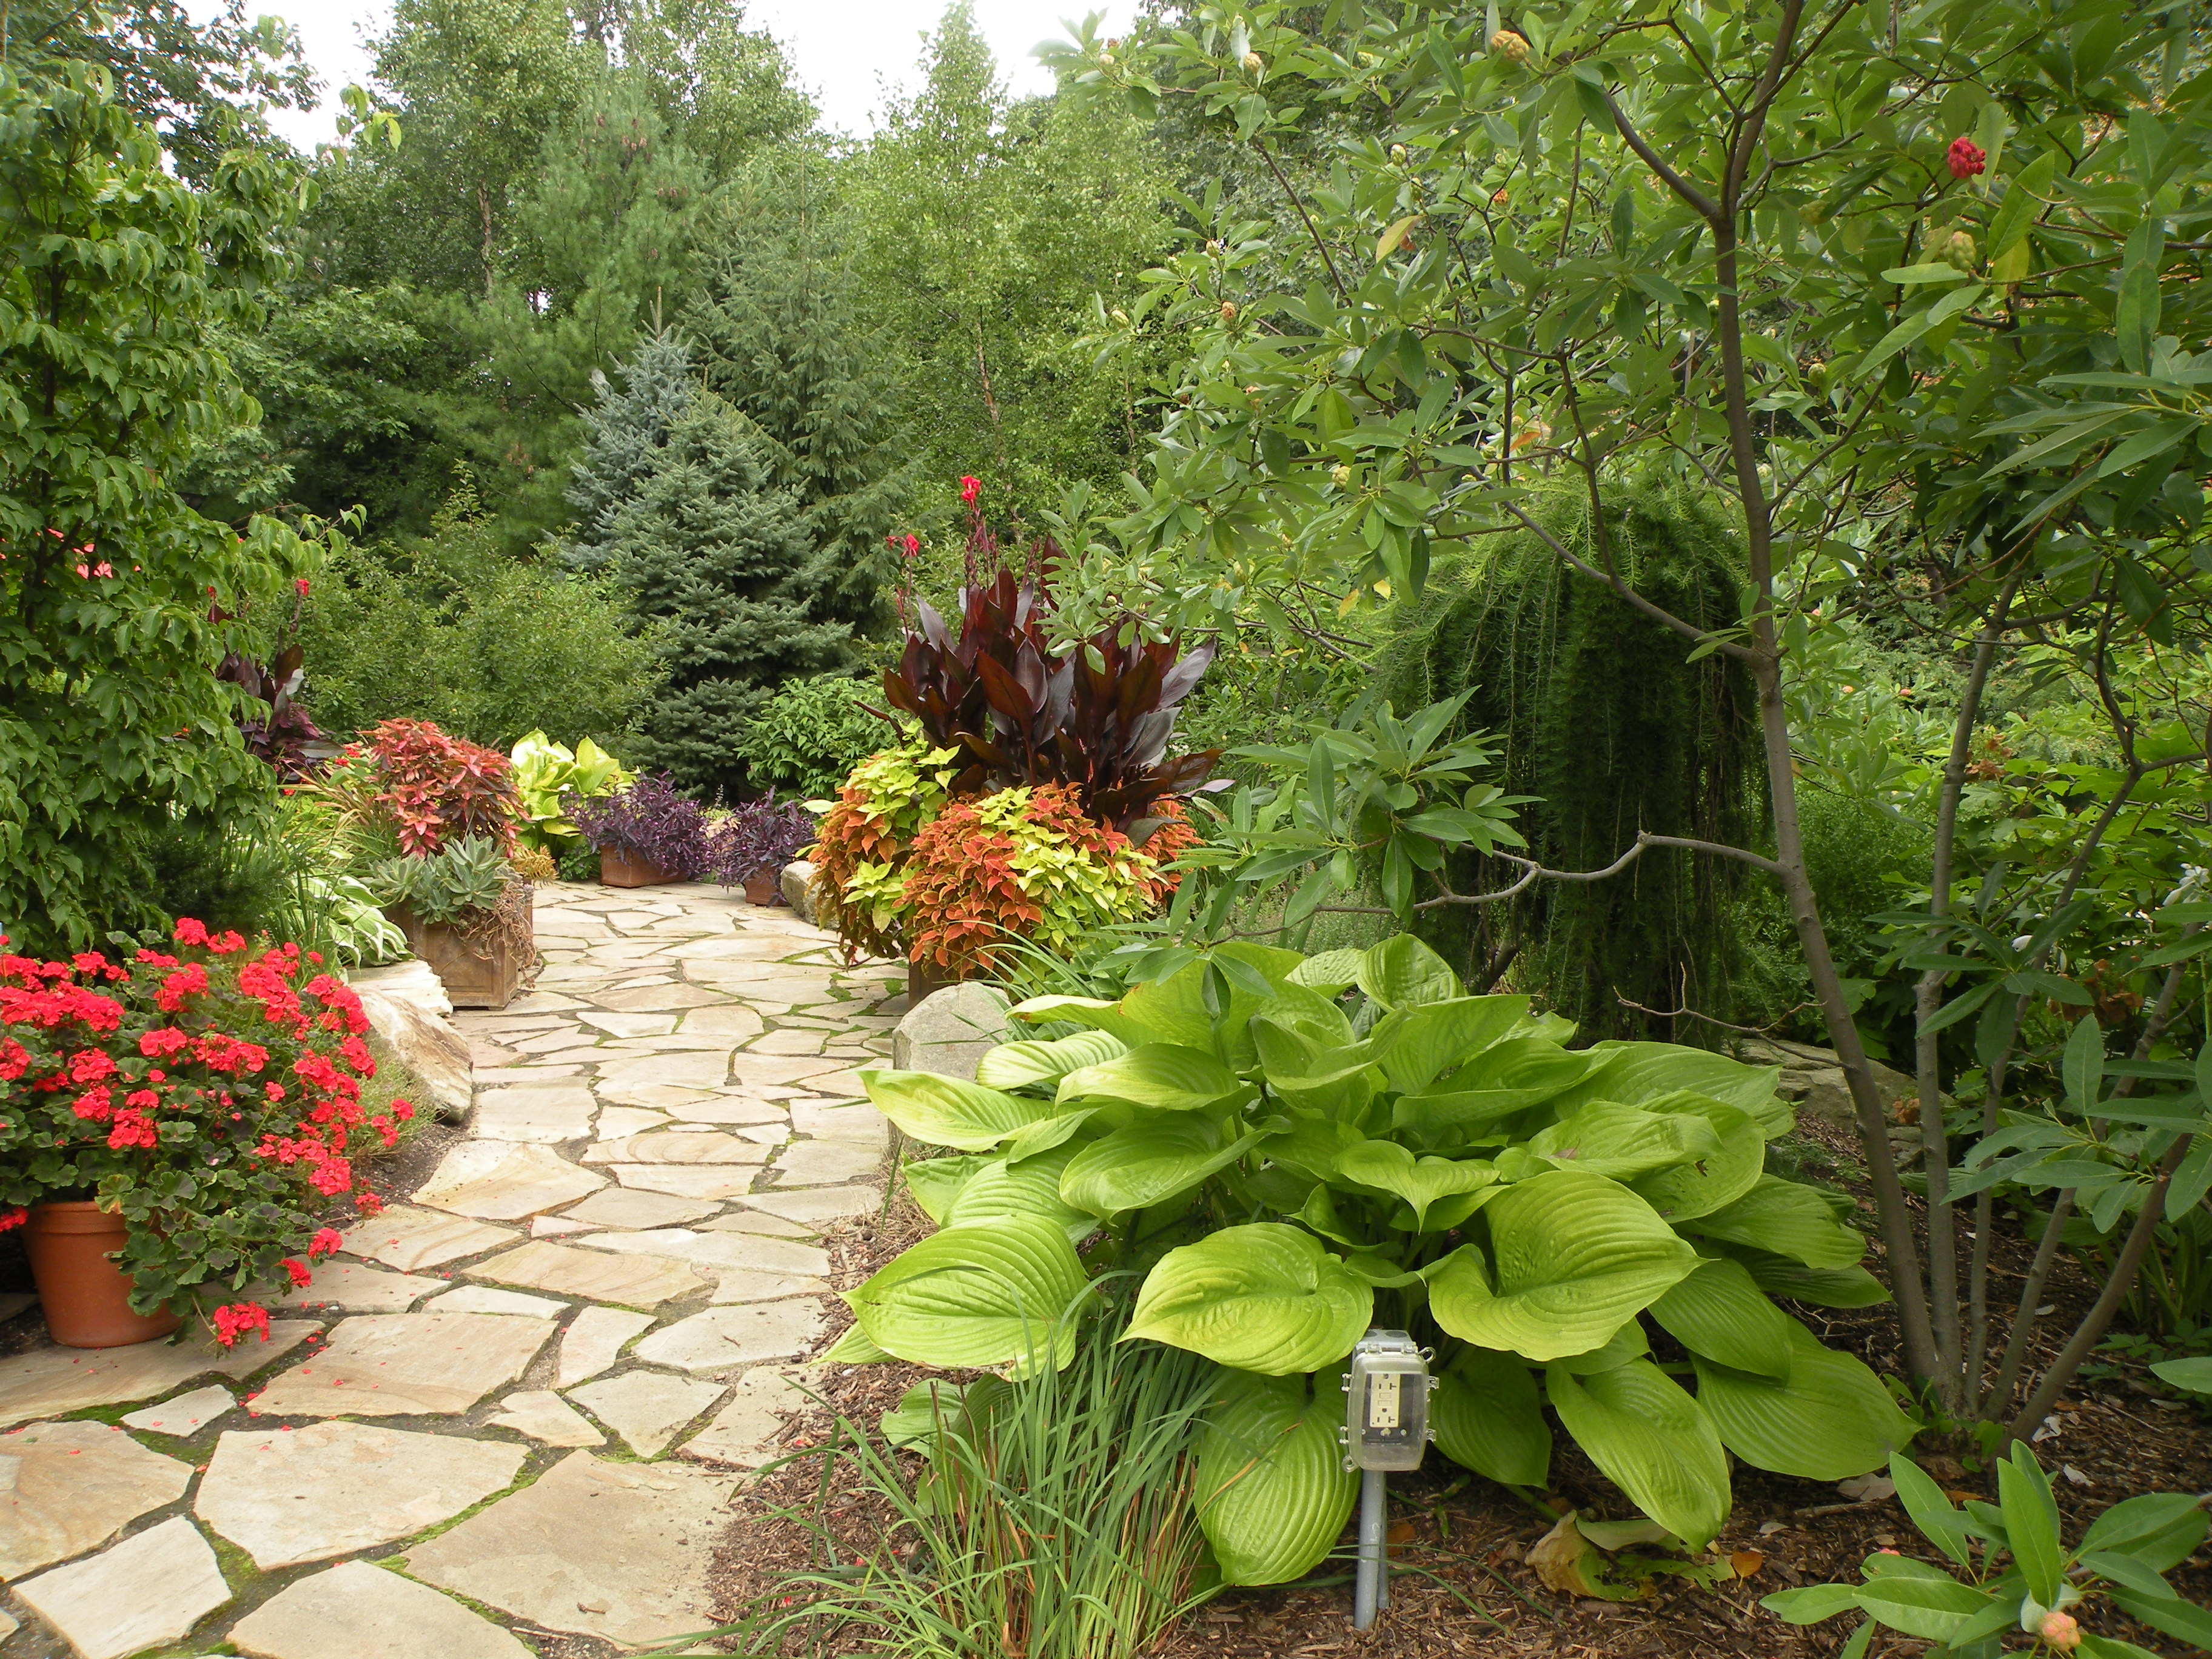 Cleveland landscape designer adds annuals to the garden for color annuals and tropicals as supplement to perennials and conifers izmirmasajfo